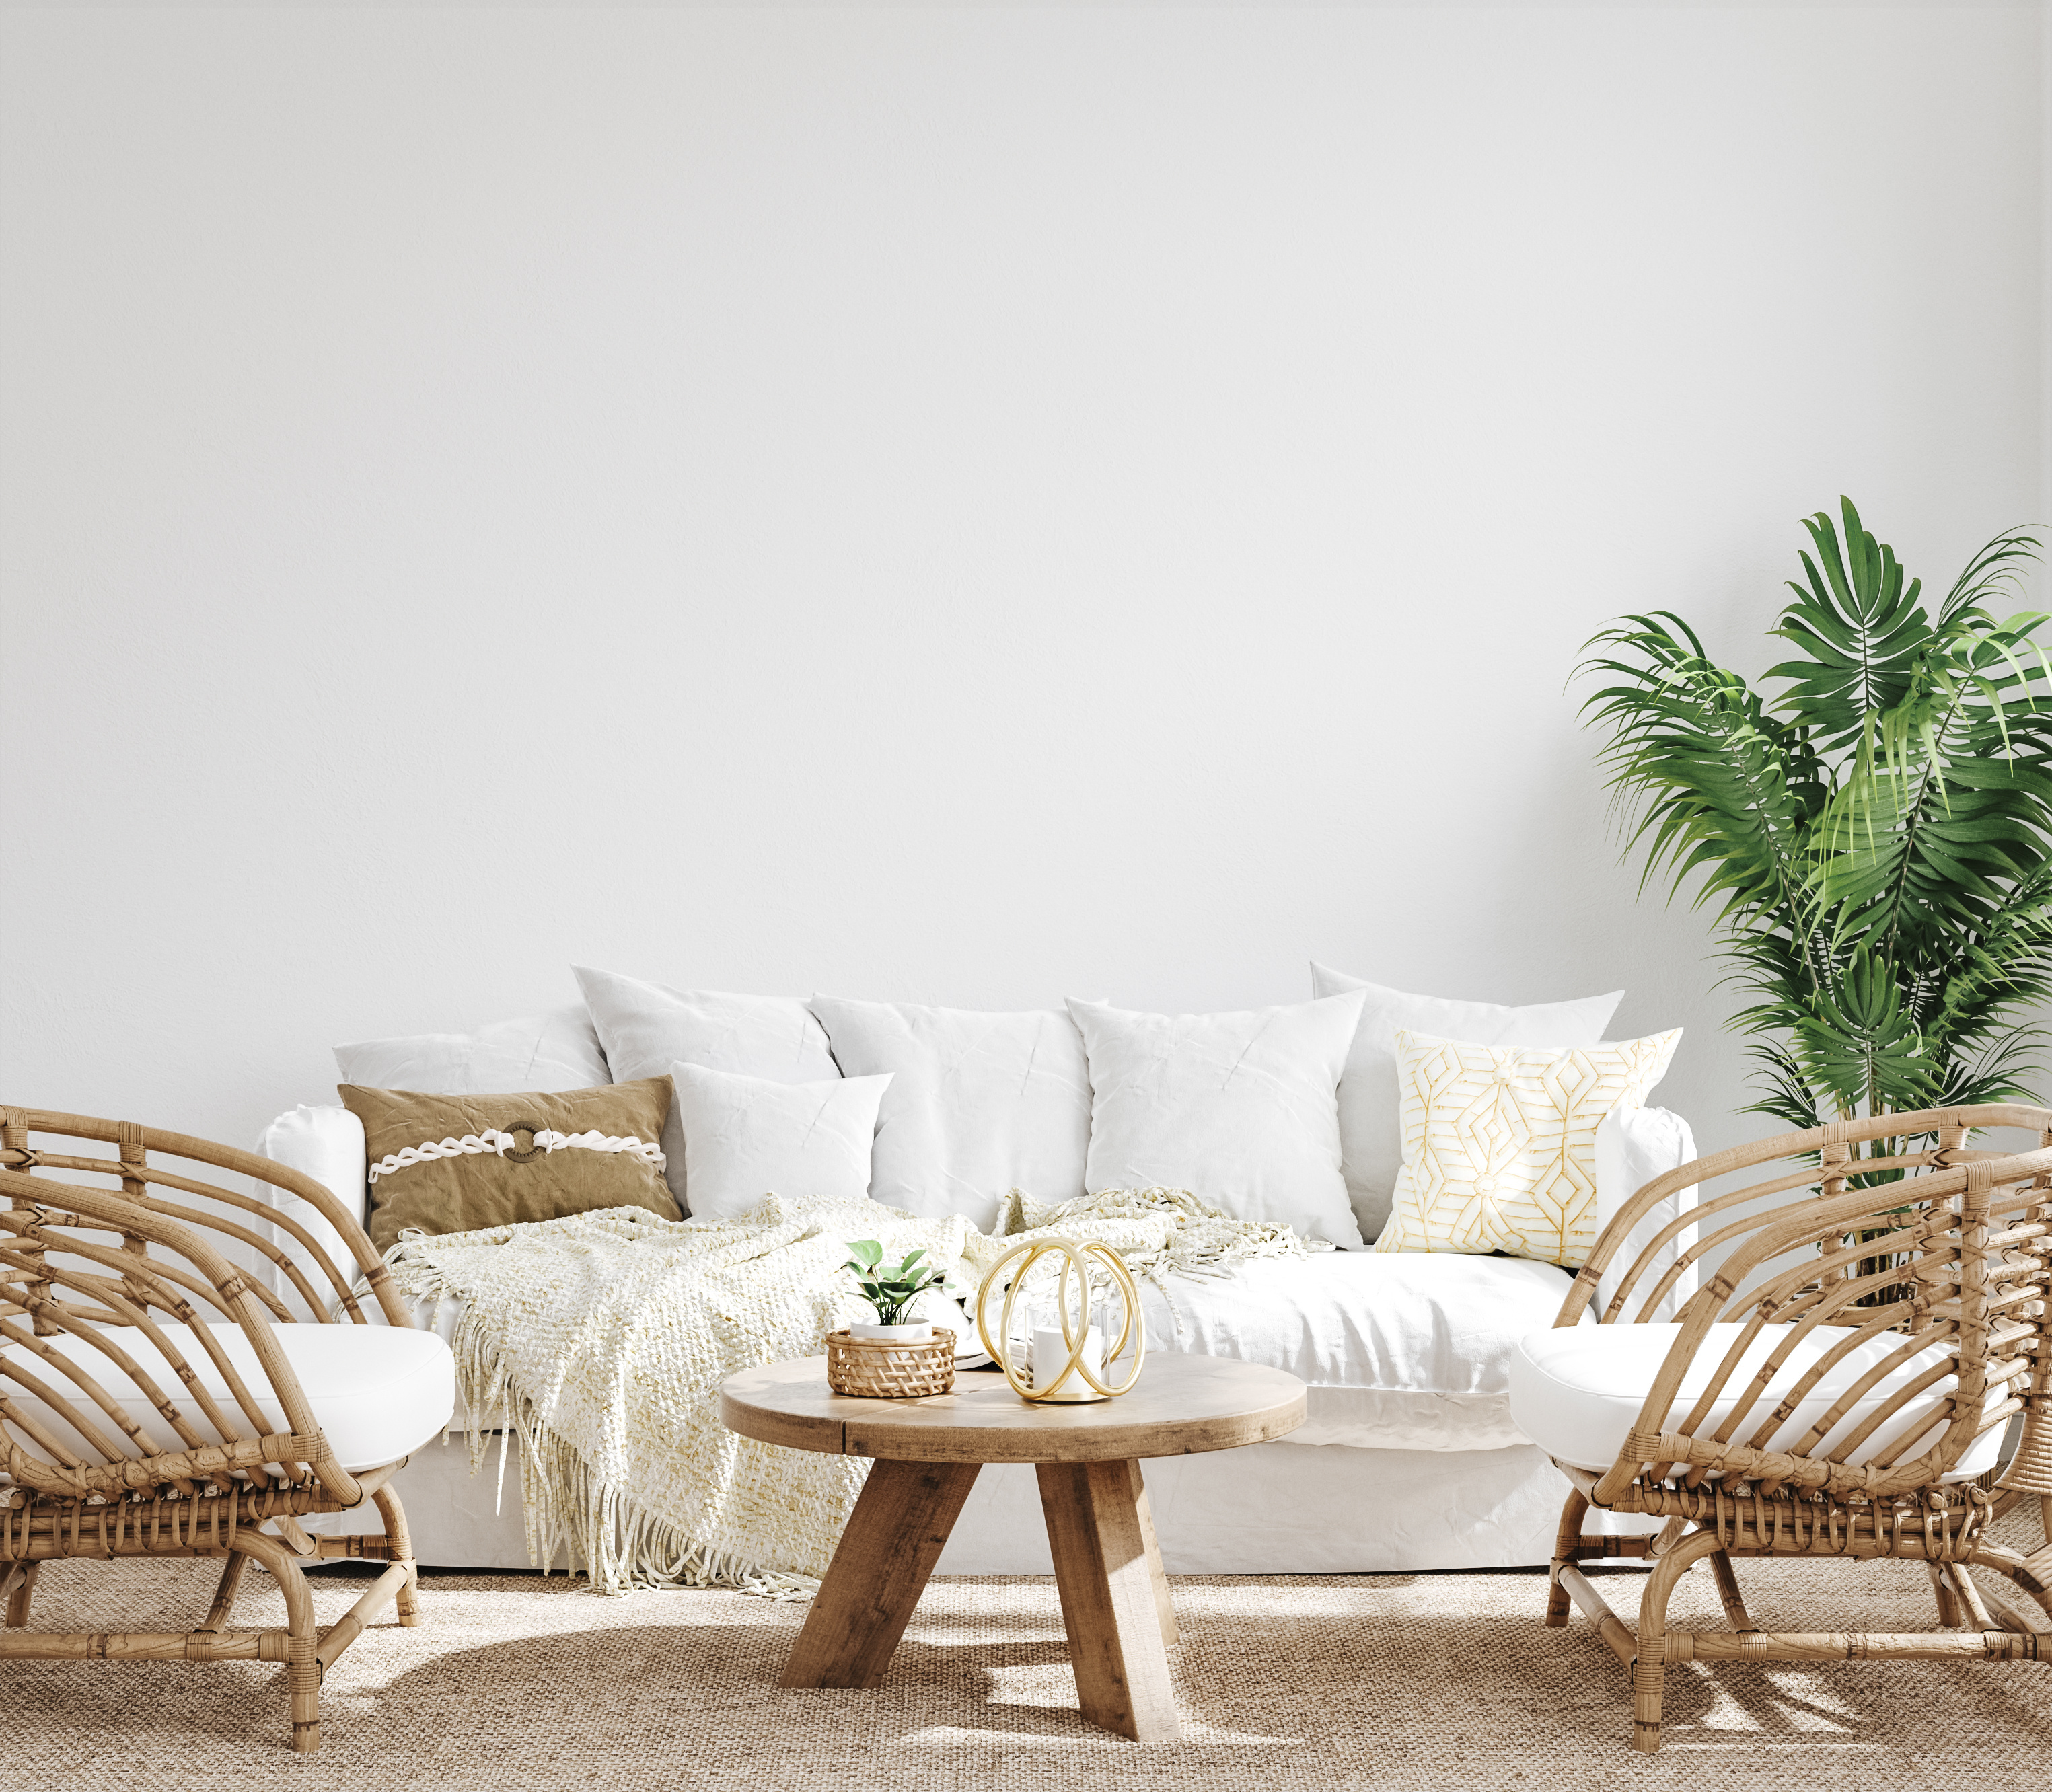 Top Coastal Styling Tips For Your Rental Home